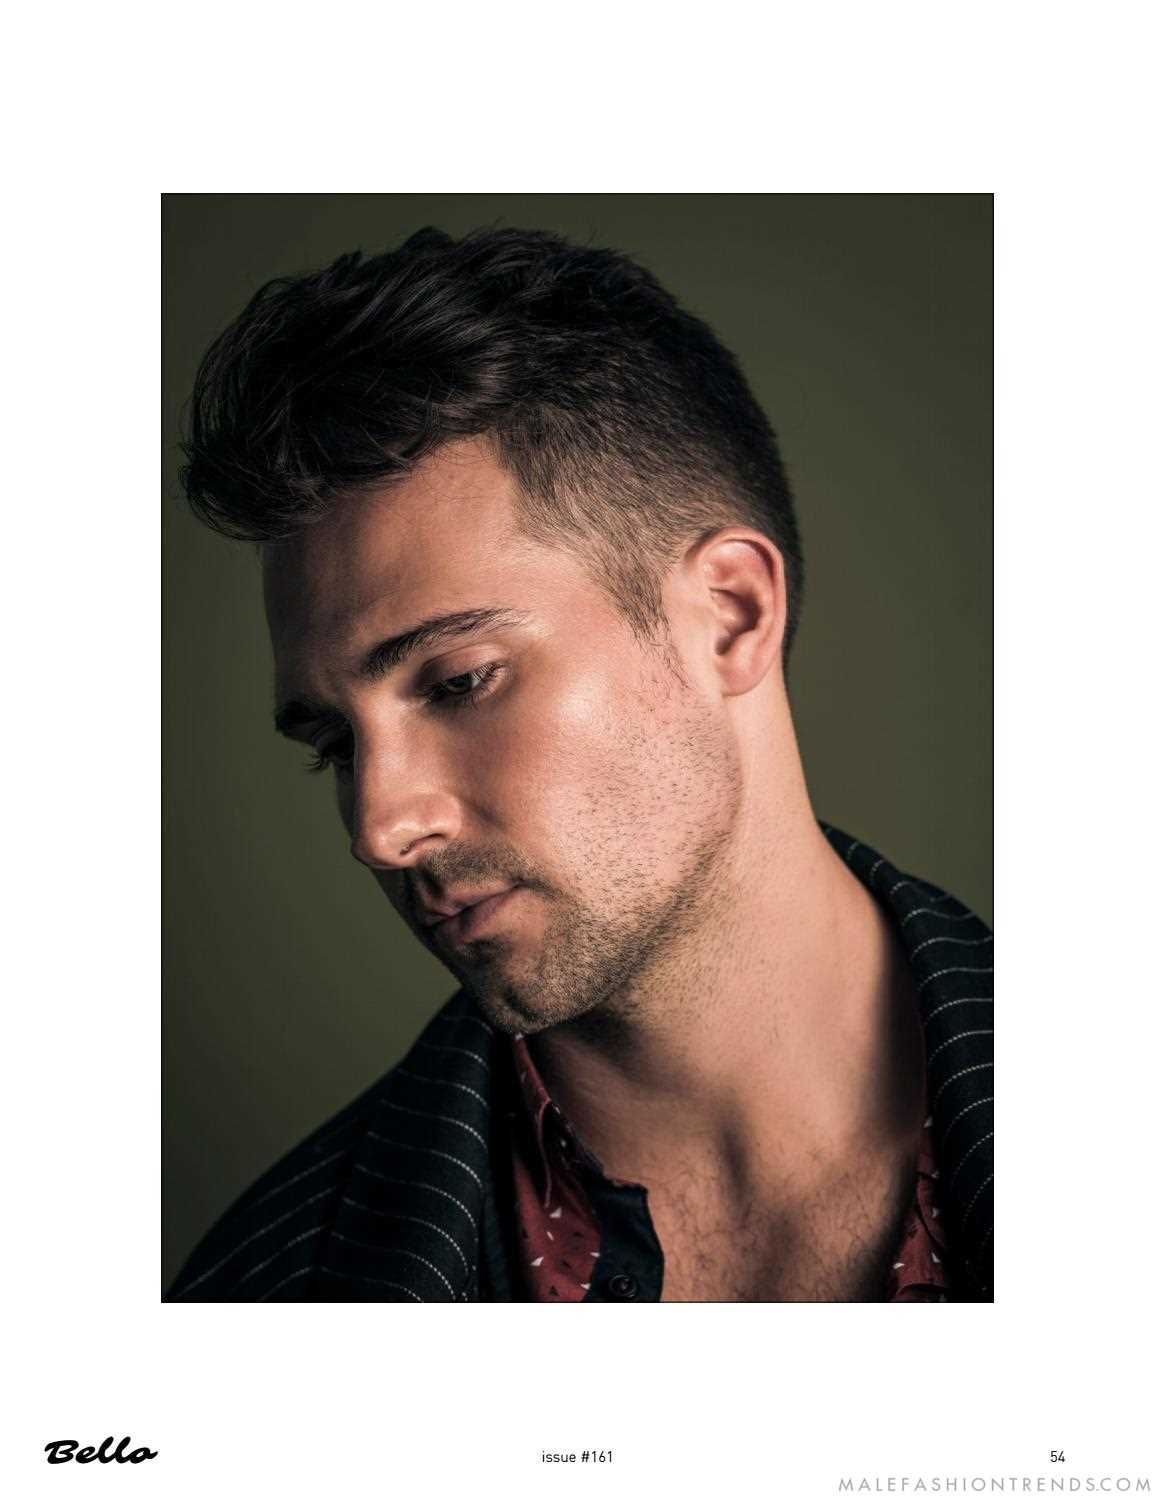 Oblong face haircut men james maslow luce eclécticos prints para bello magazine  james maslow